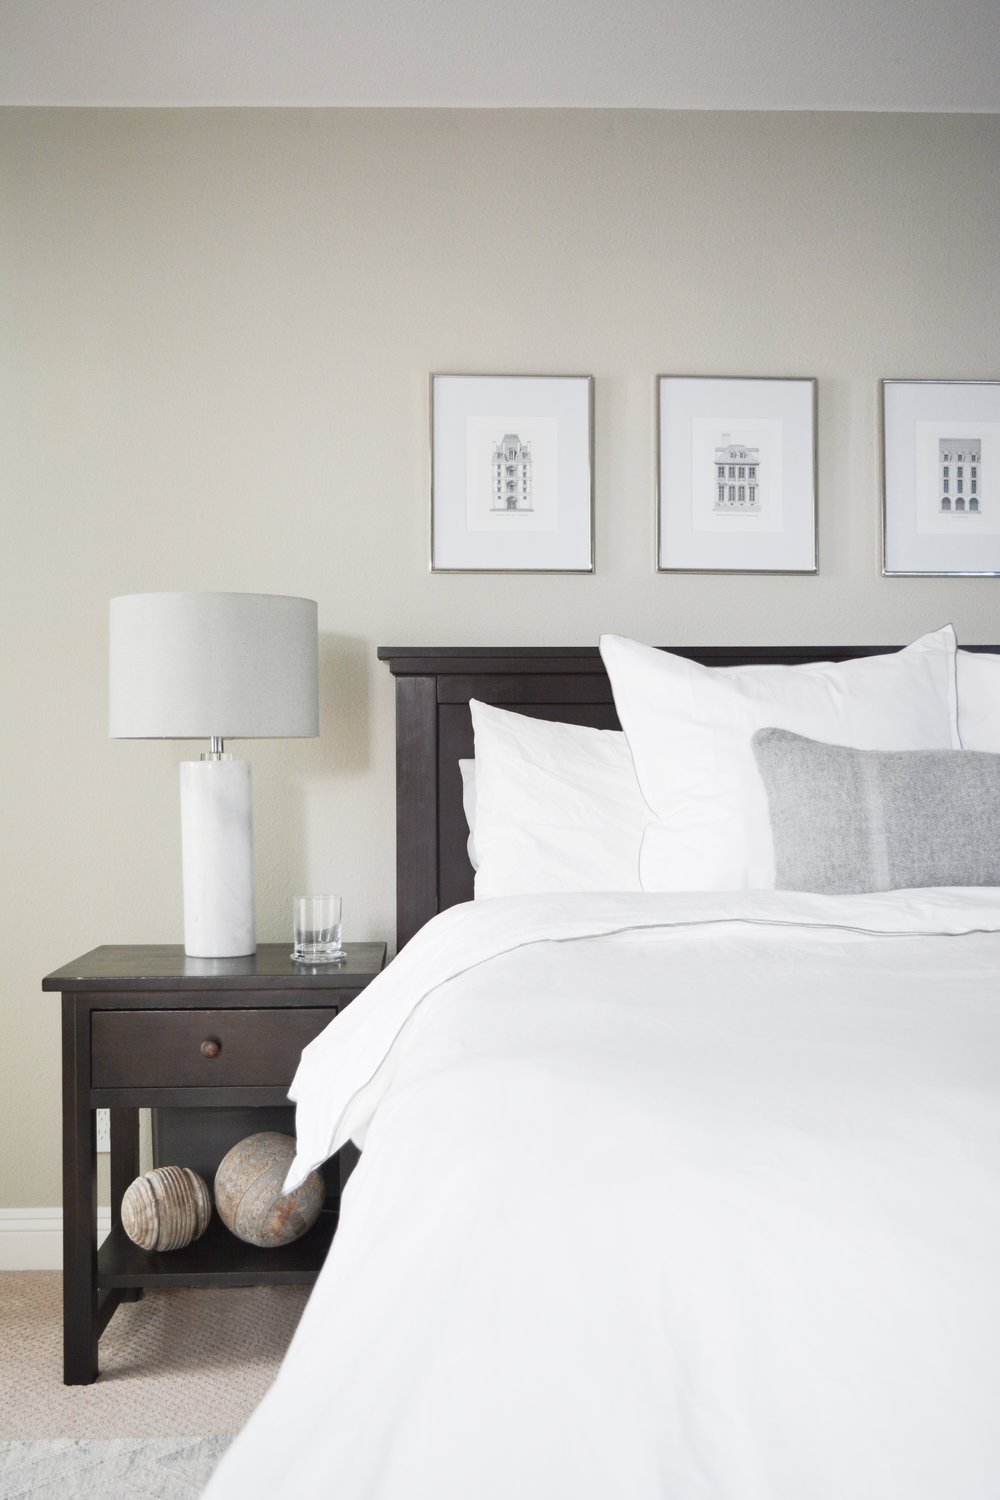 Angela Grace Design // Cambridge Master Bedroom // San Francisco and SF Bay Area Interior Designer, Decorator